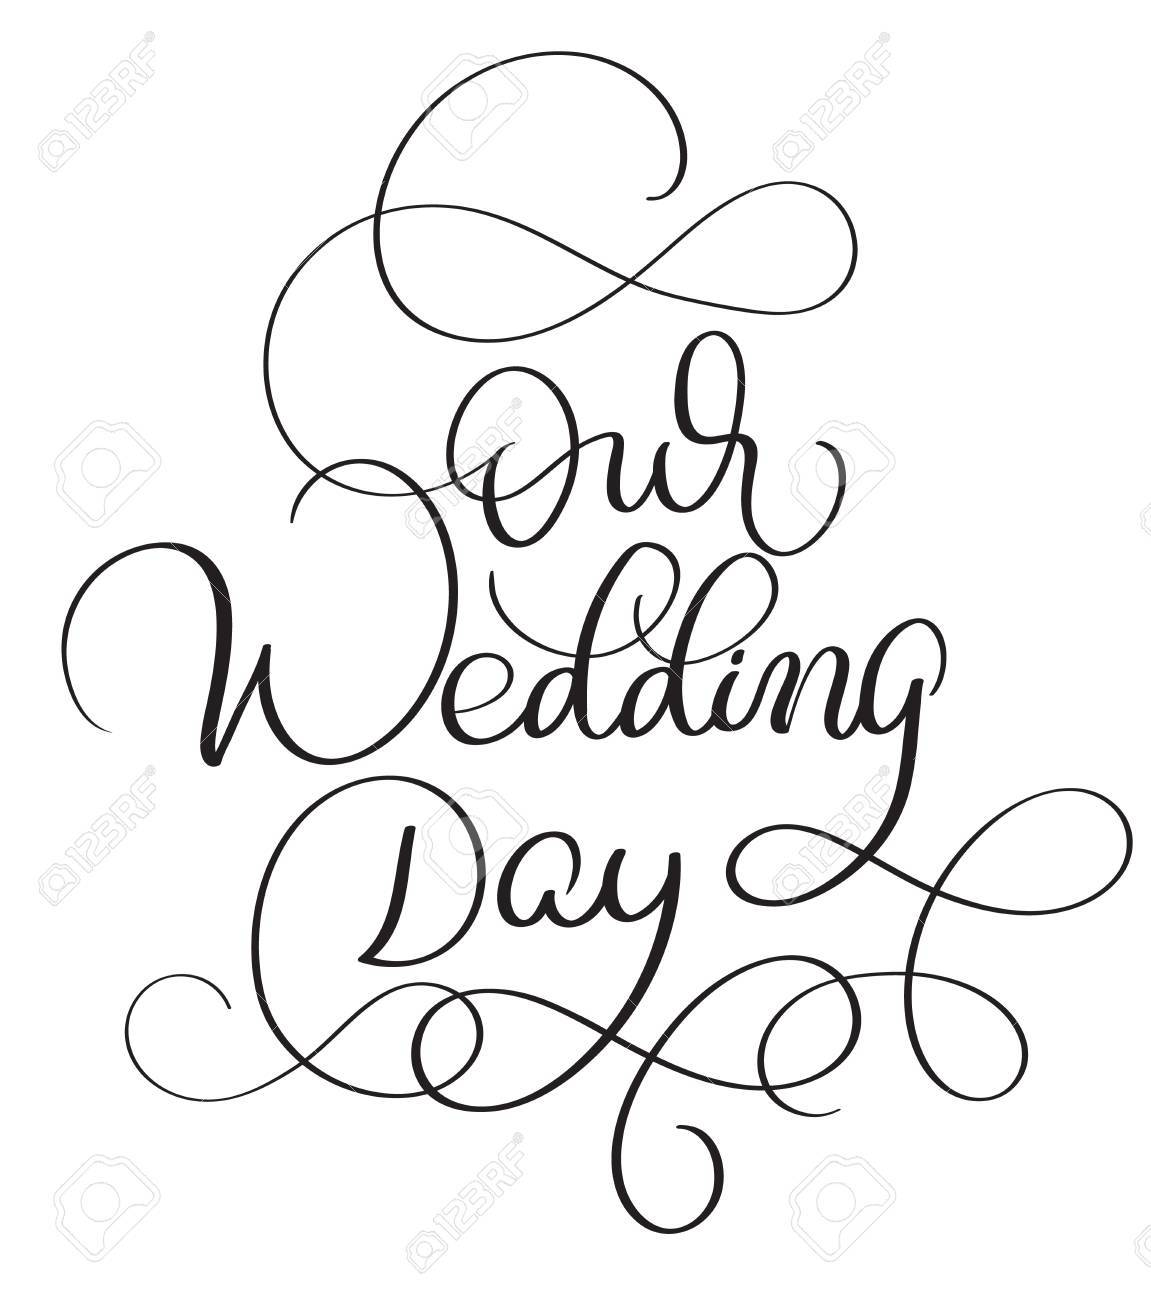 Our Wedding Day Text On White Background. Hand Drawn Calligraphy